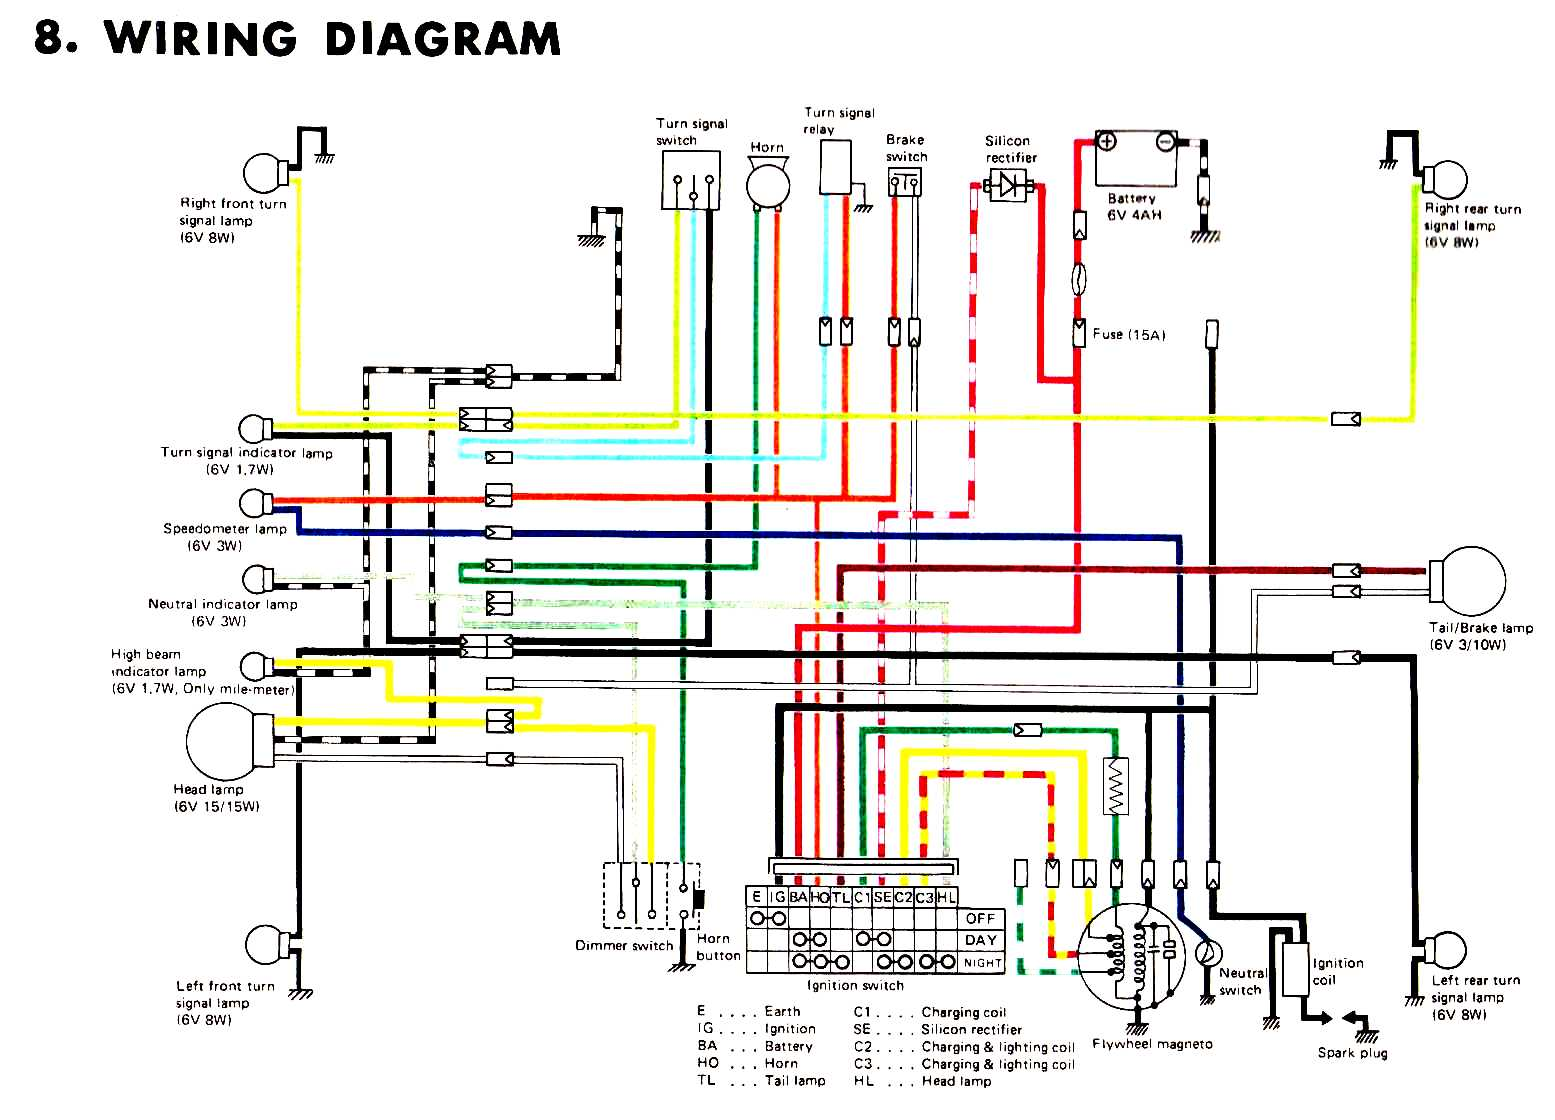 Suzuki Rv 125 Wiring Diagram Free For You Quadrunner 160 Key Rv90 Honda Cl350 Rv125 Van